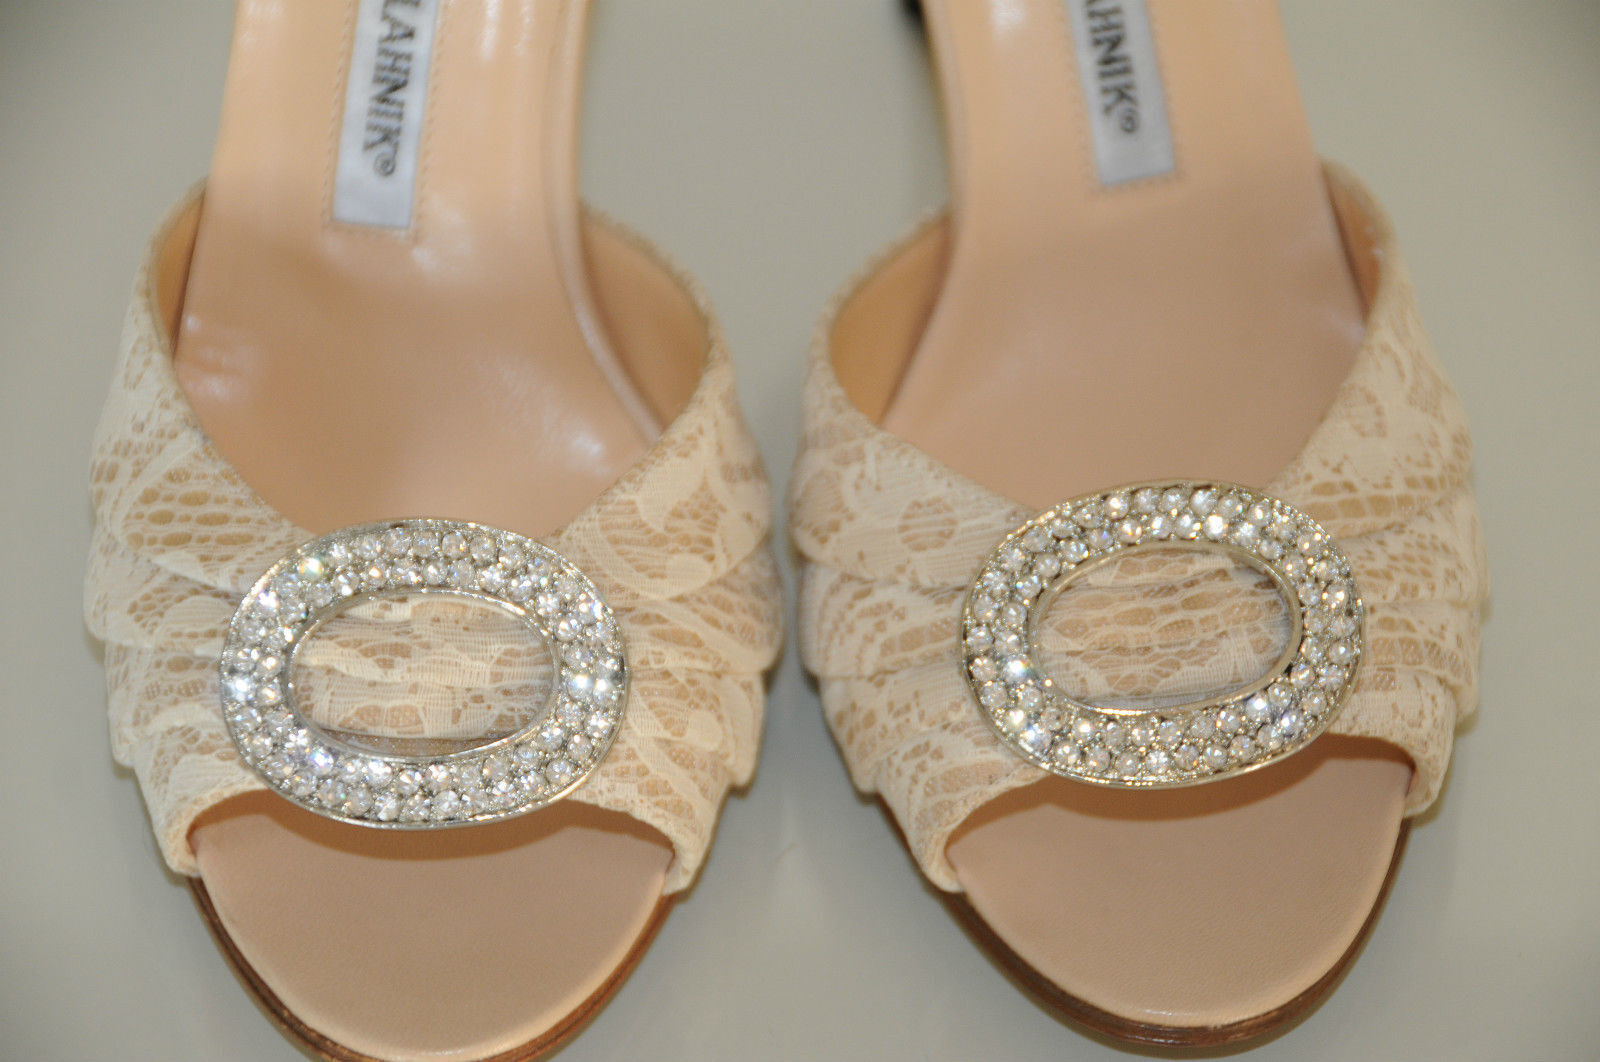 785 New MANOLO BLAHNIK SEDARABY Beige Lace Nude Silver Jeweled SHOES wedding 38